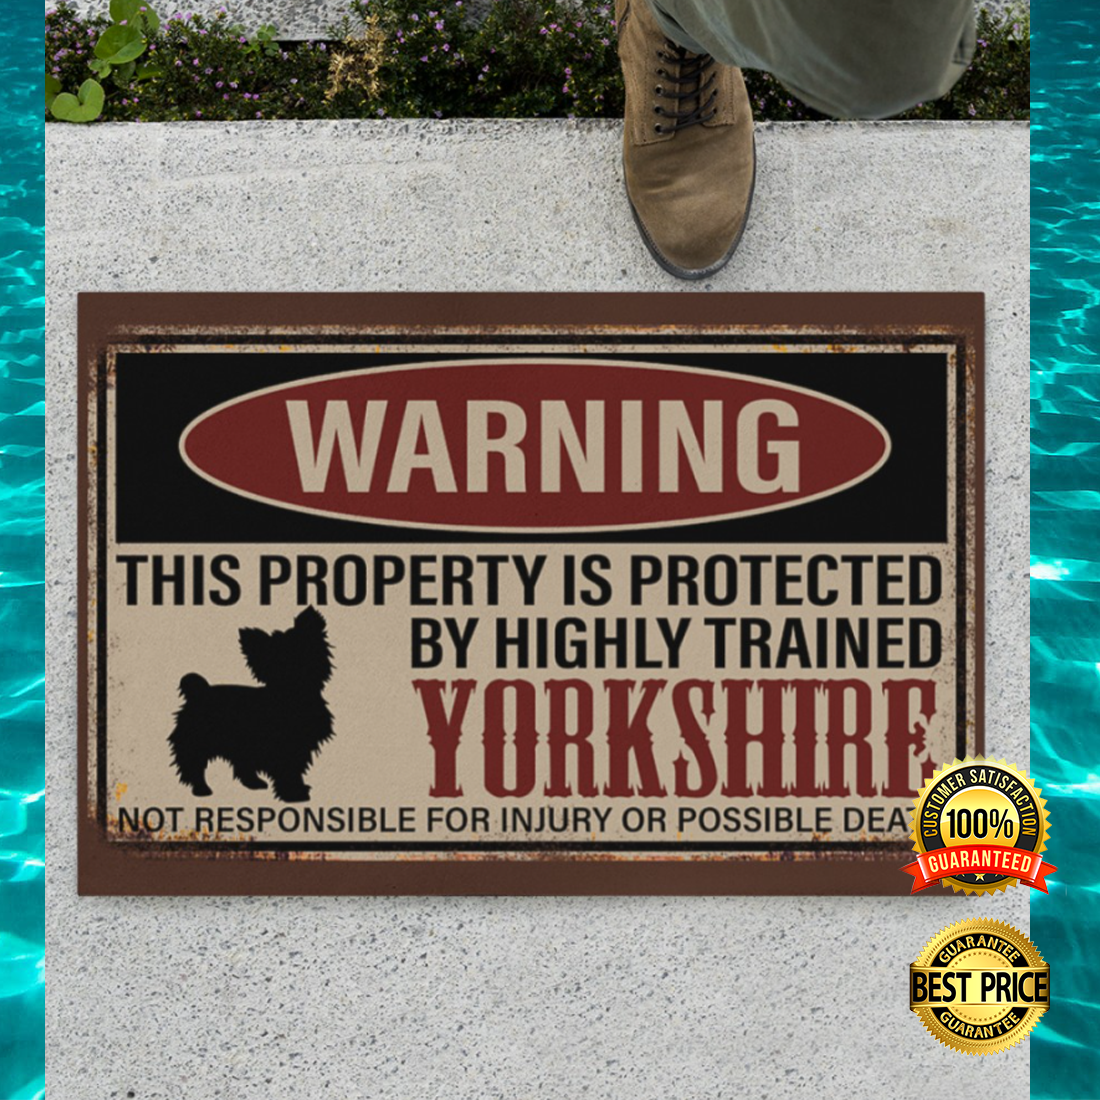 Warning this property is protected by highly trained yorkshire doormat 4